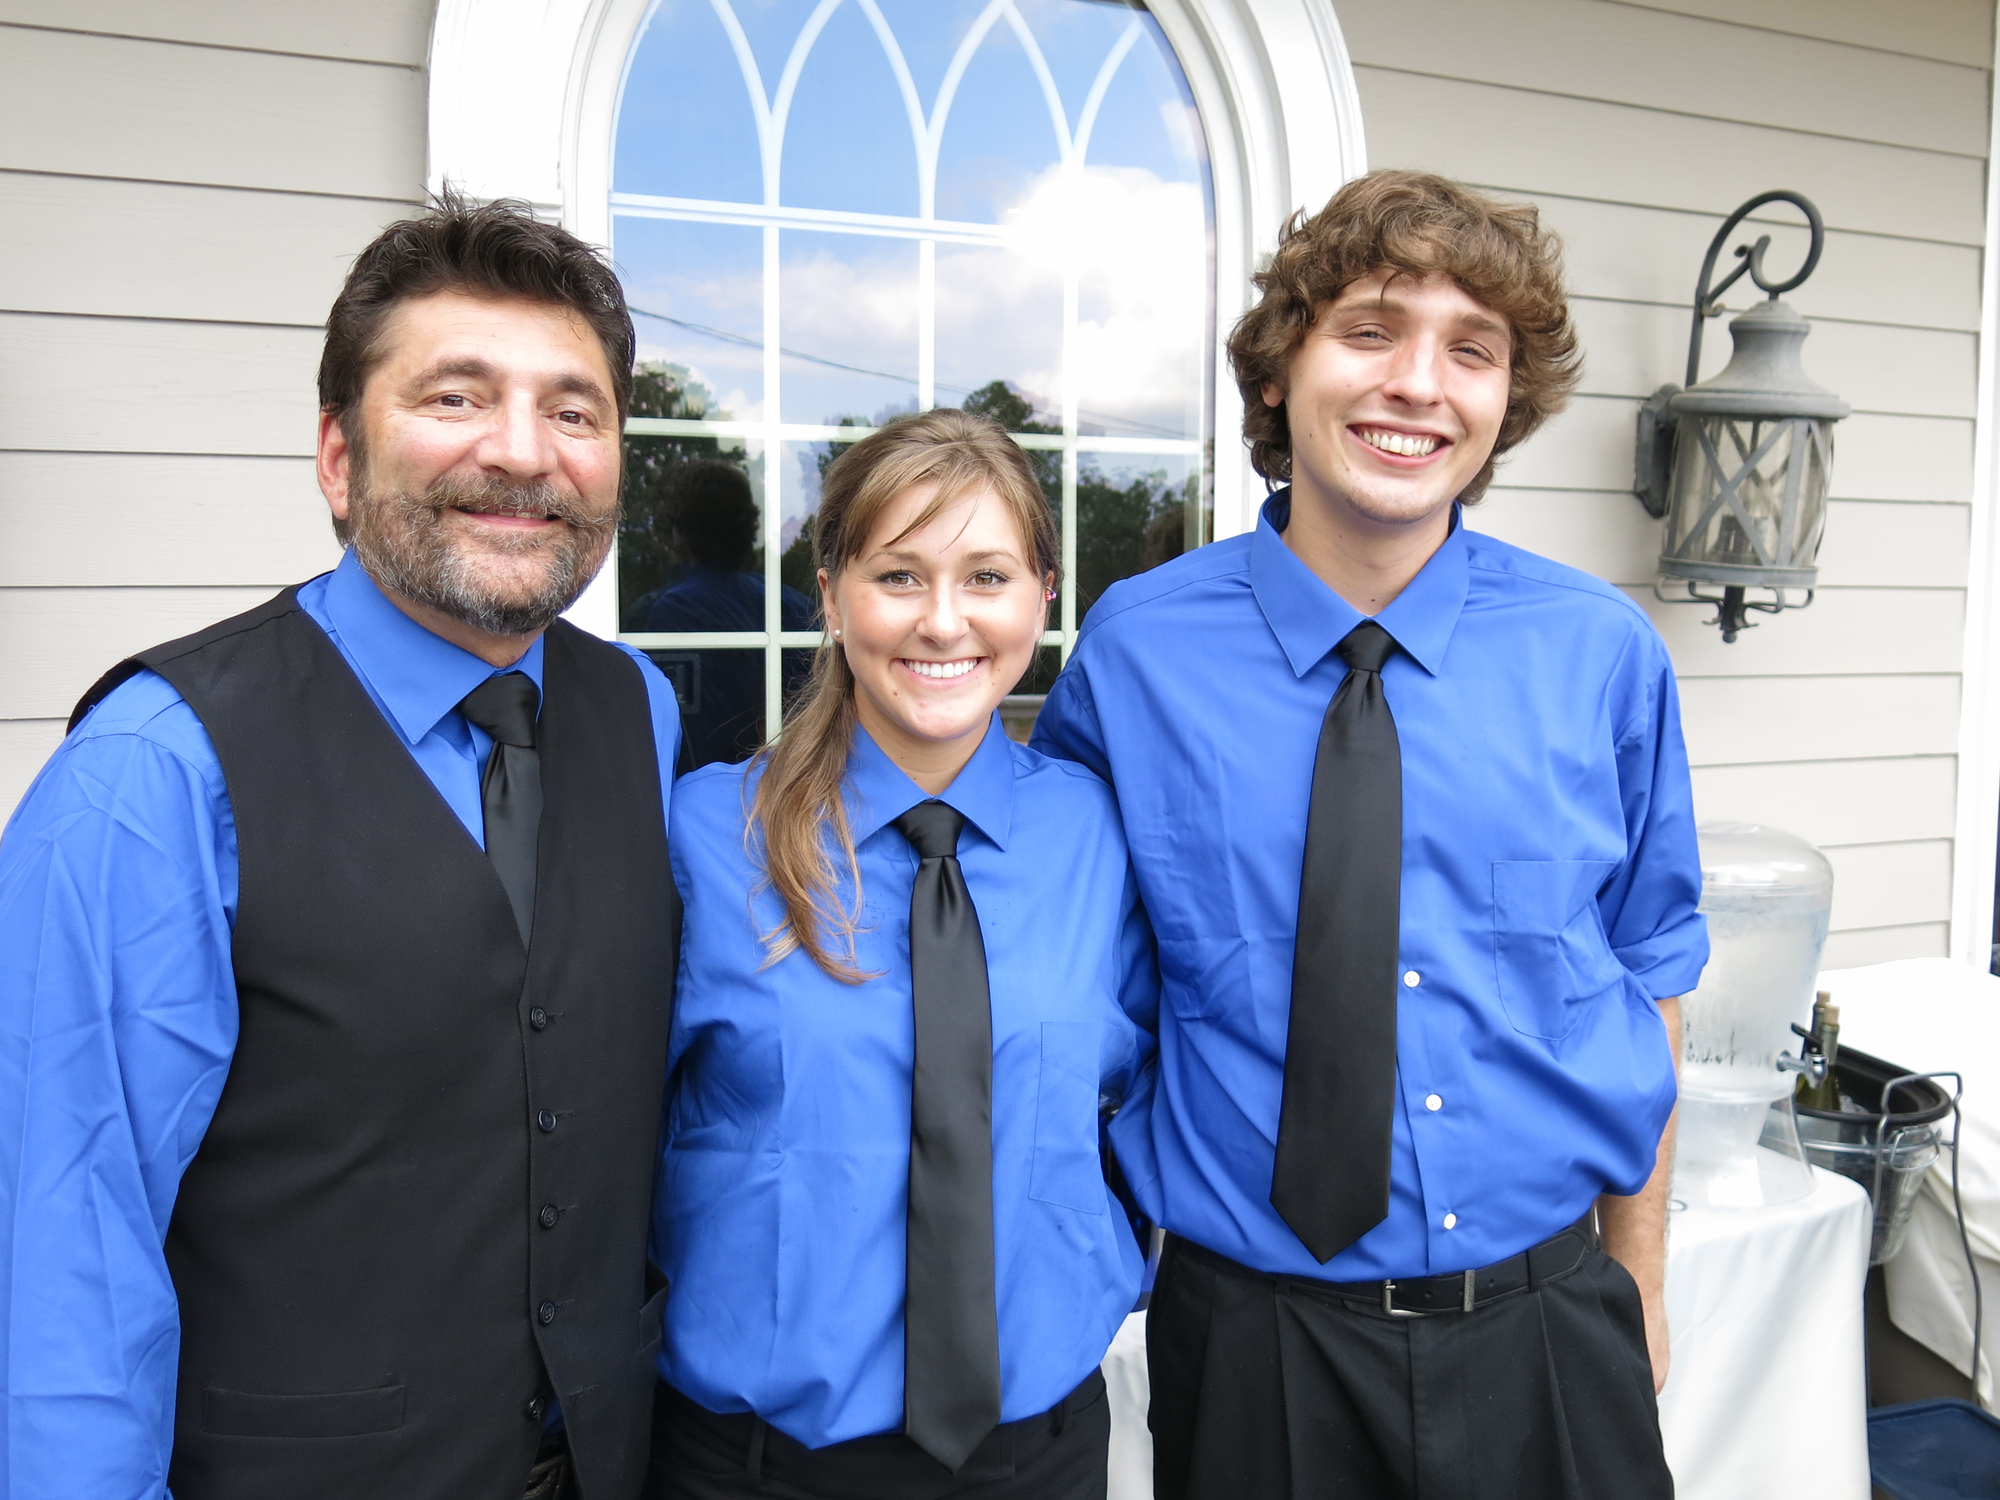 Three employees of Saratoga Event Group and Avenue Catering Concepts, dressed in their uniforms